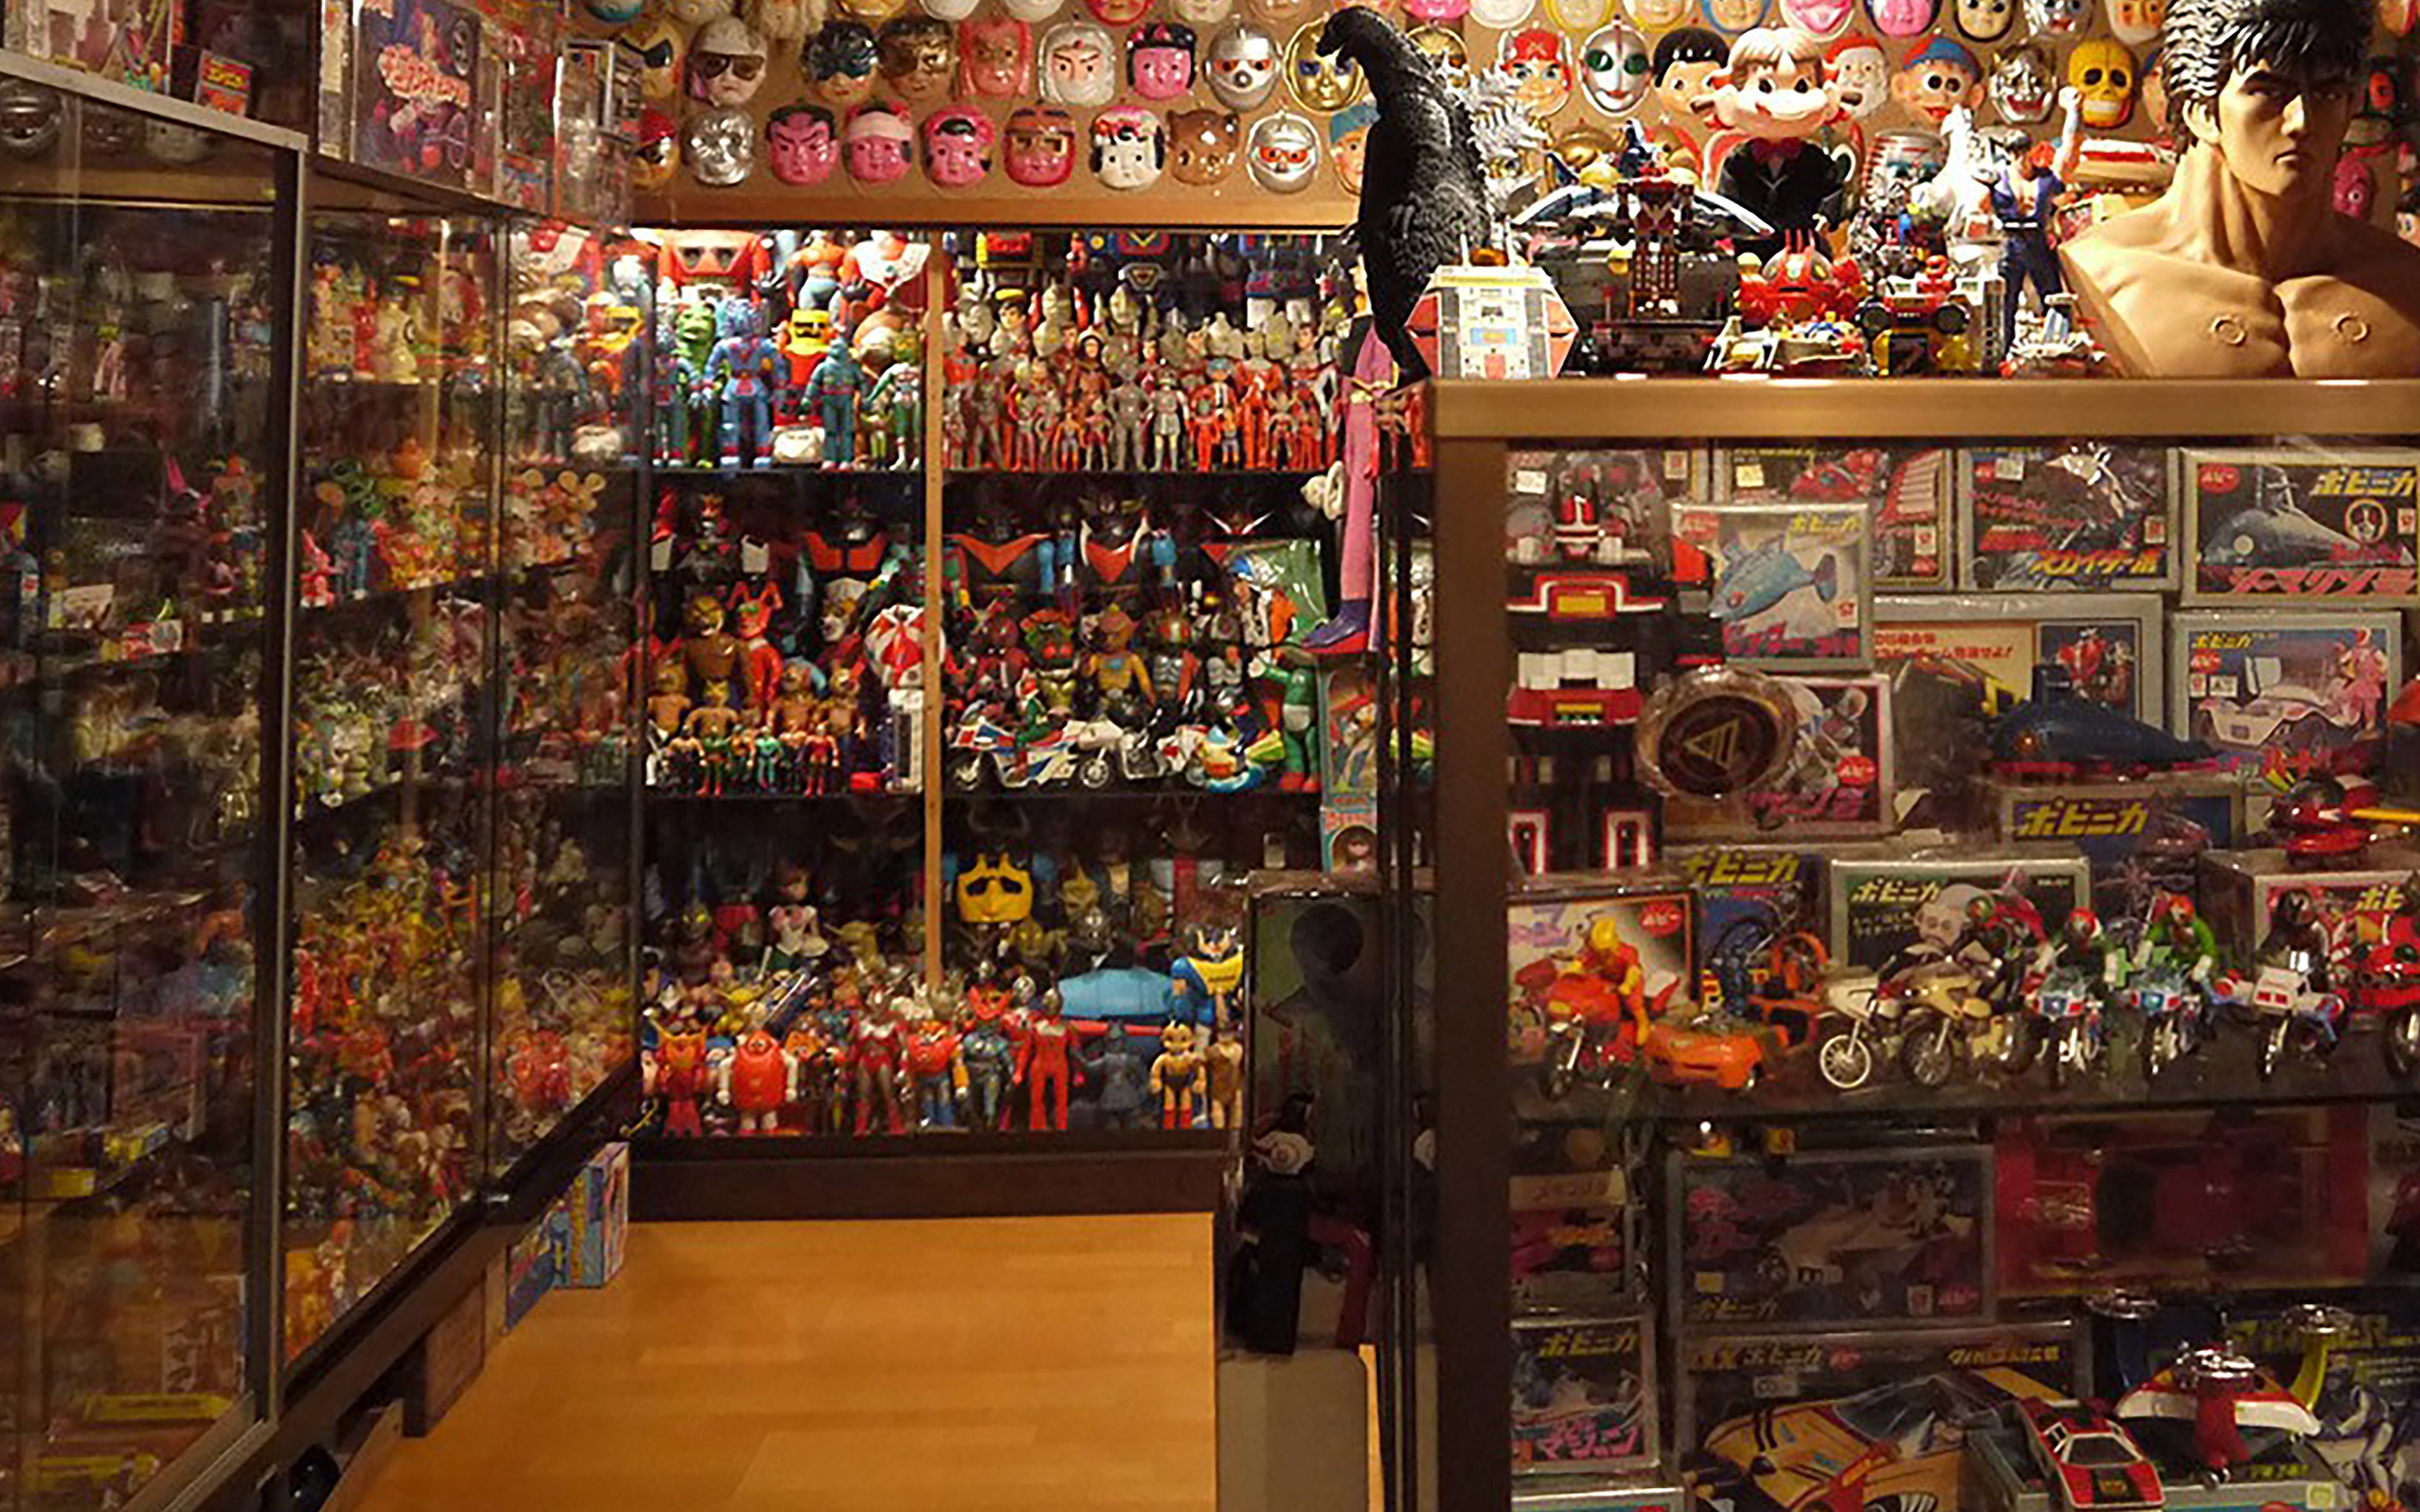 Japan Toy Store : Vintage toy museum in japan aton